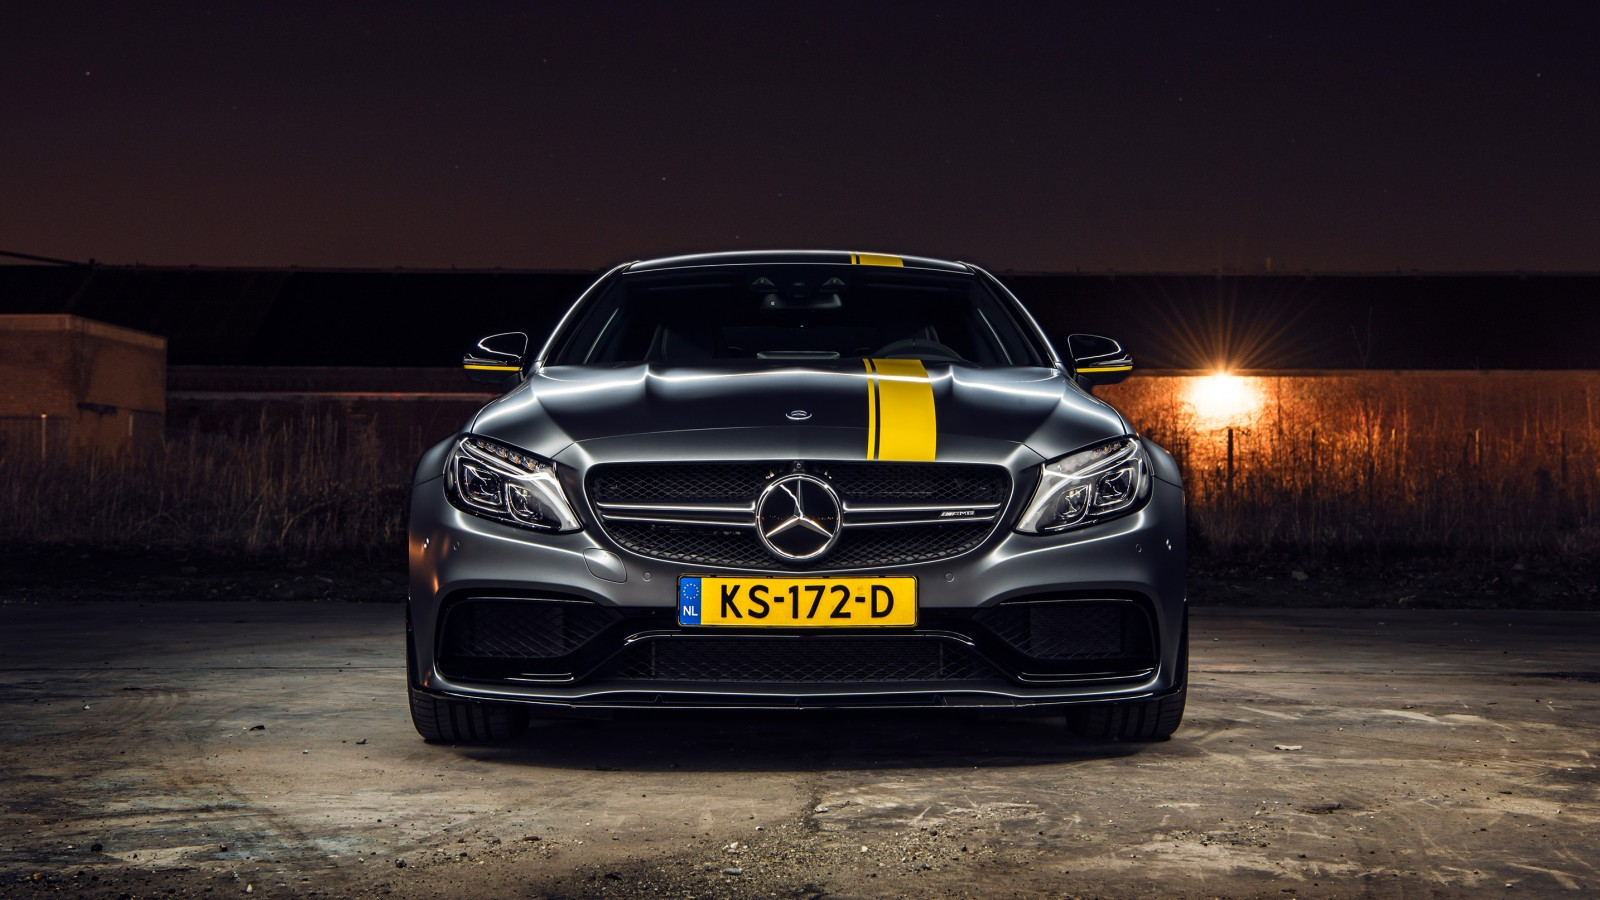 Mercedes AMG C63 S Coupe Edition HD Wallpaper | HD Car ...